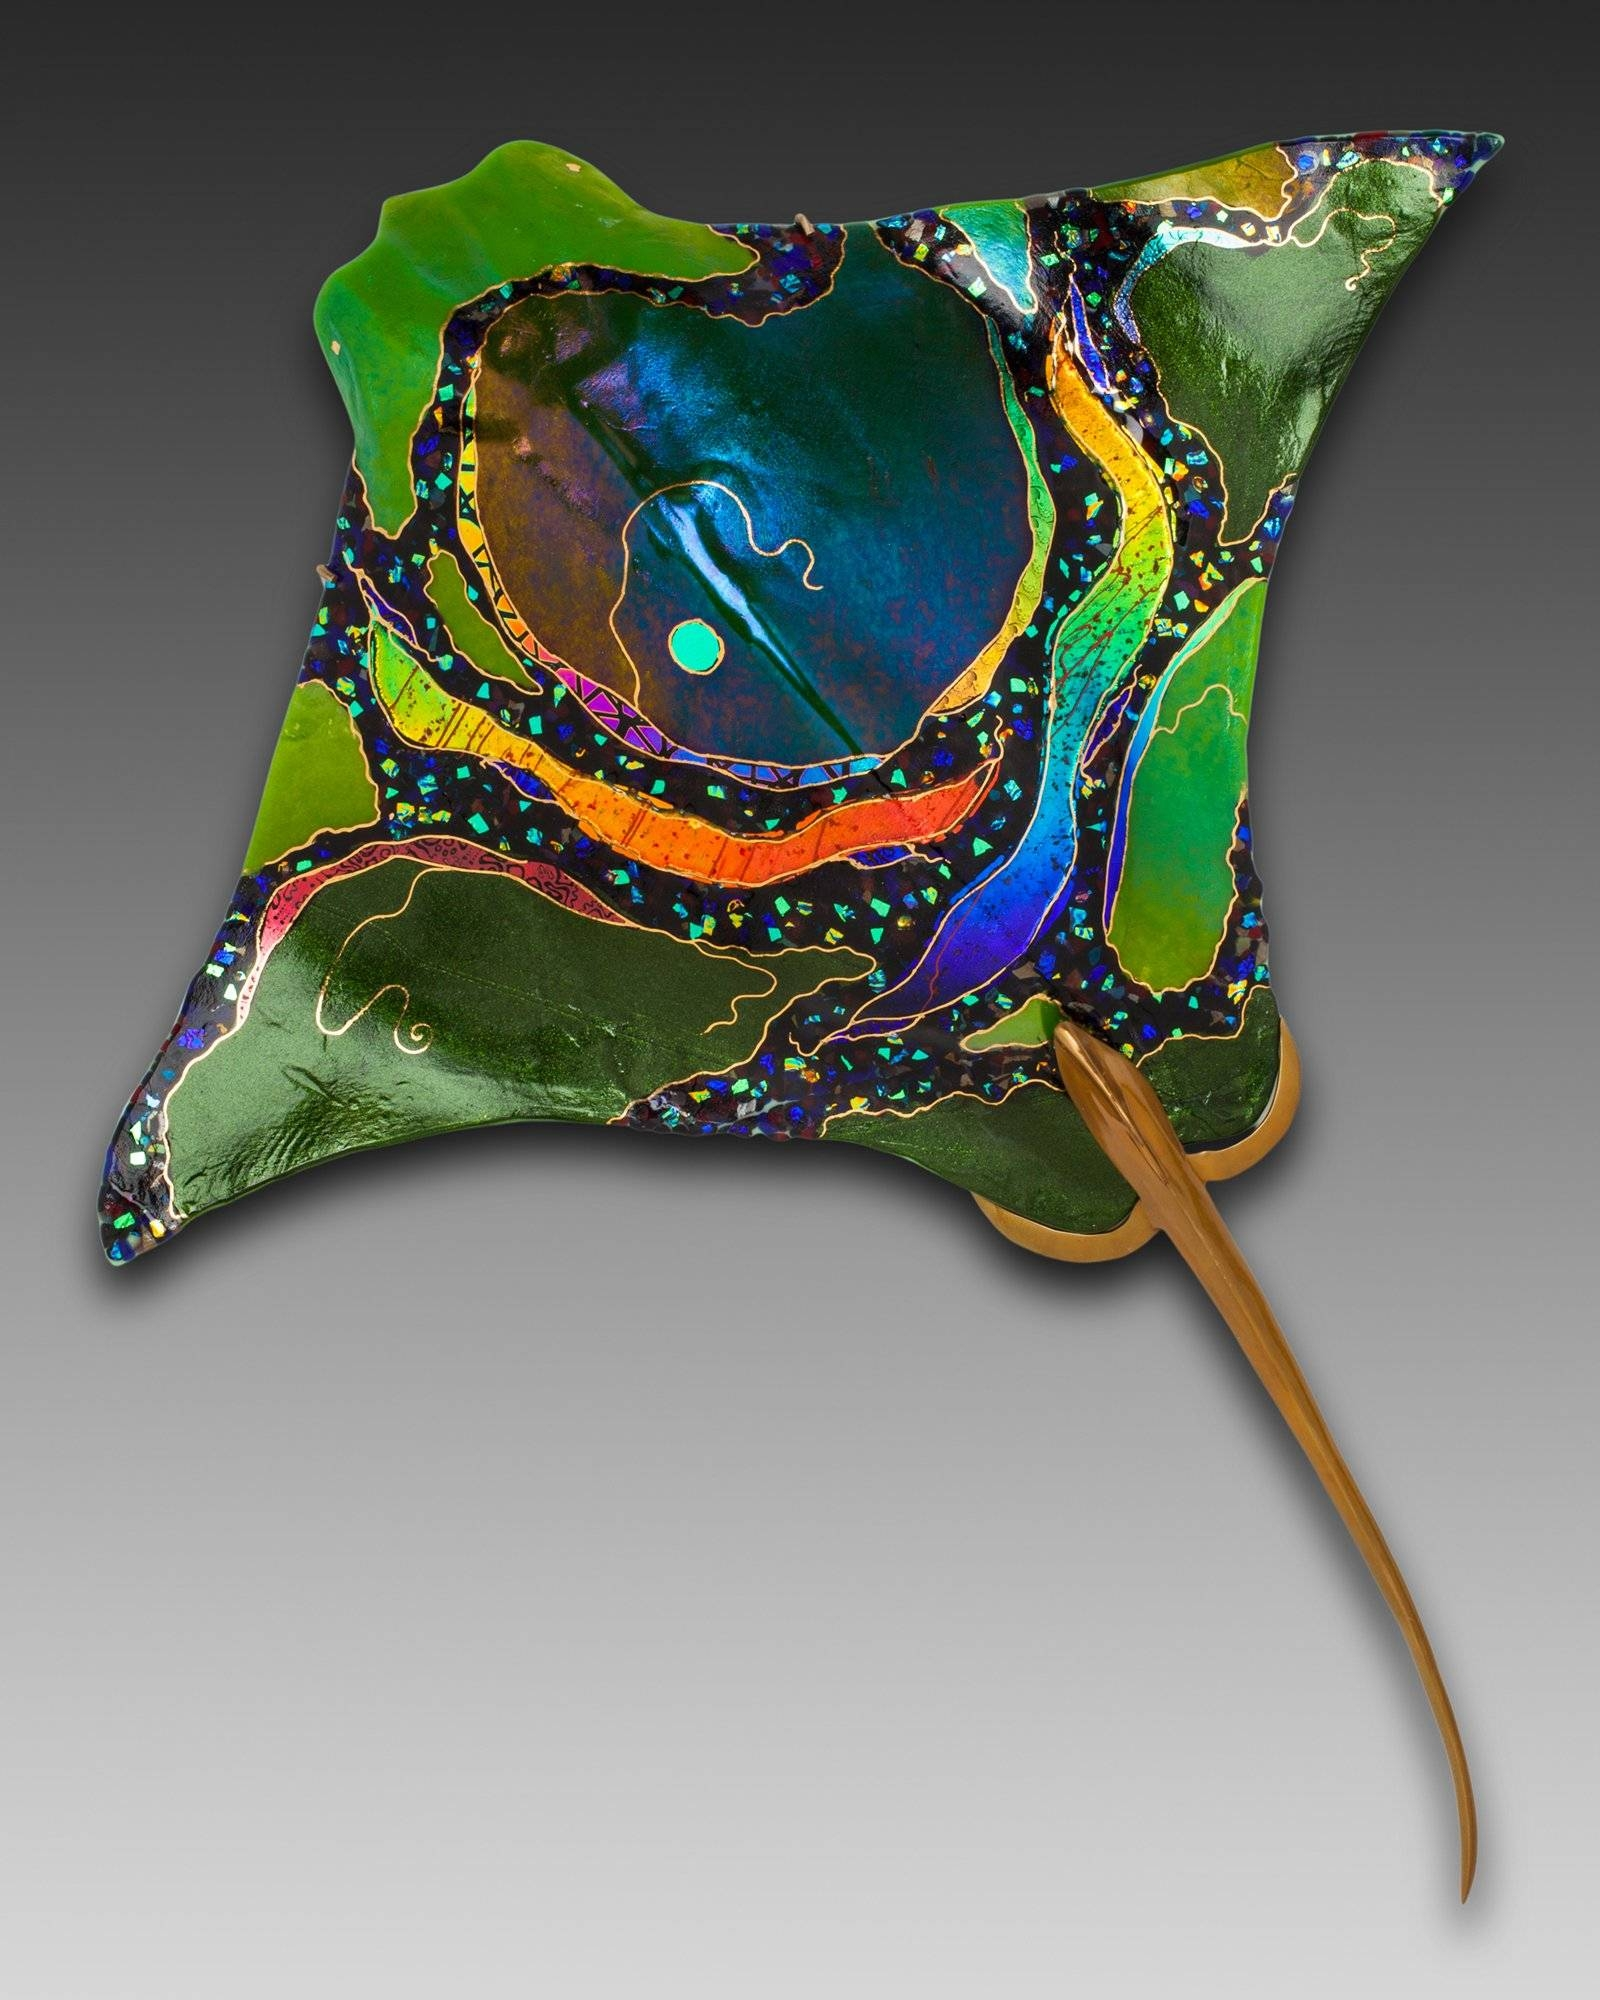 Glass Wall Artnorth American Artists | Artful Home Throughout Newest Glass Wall Artworks (View 15 of 15)